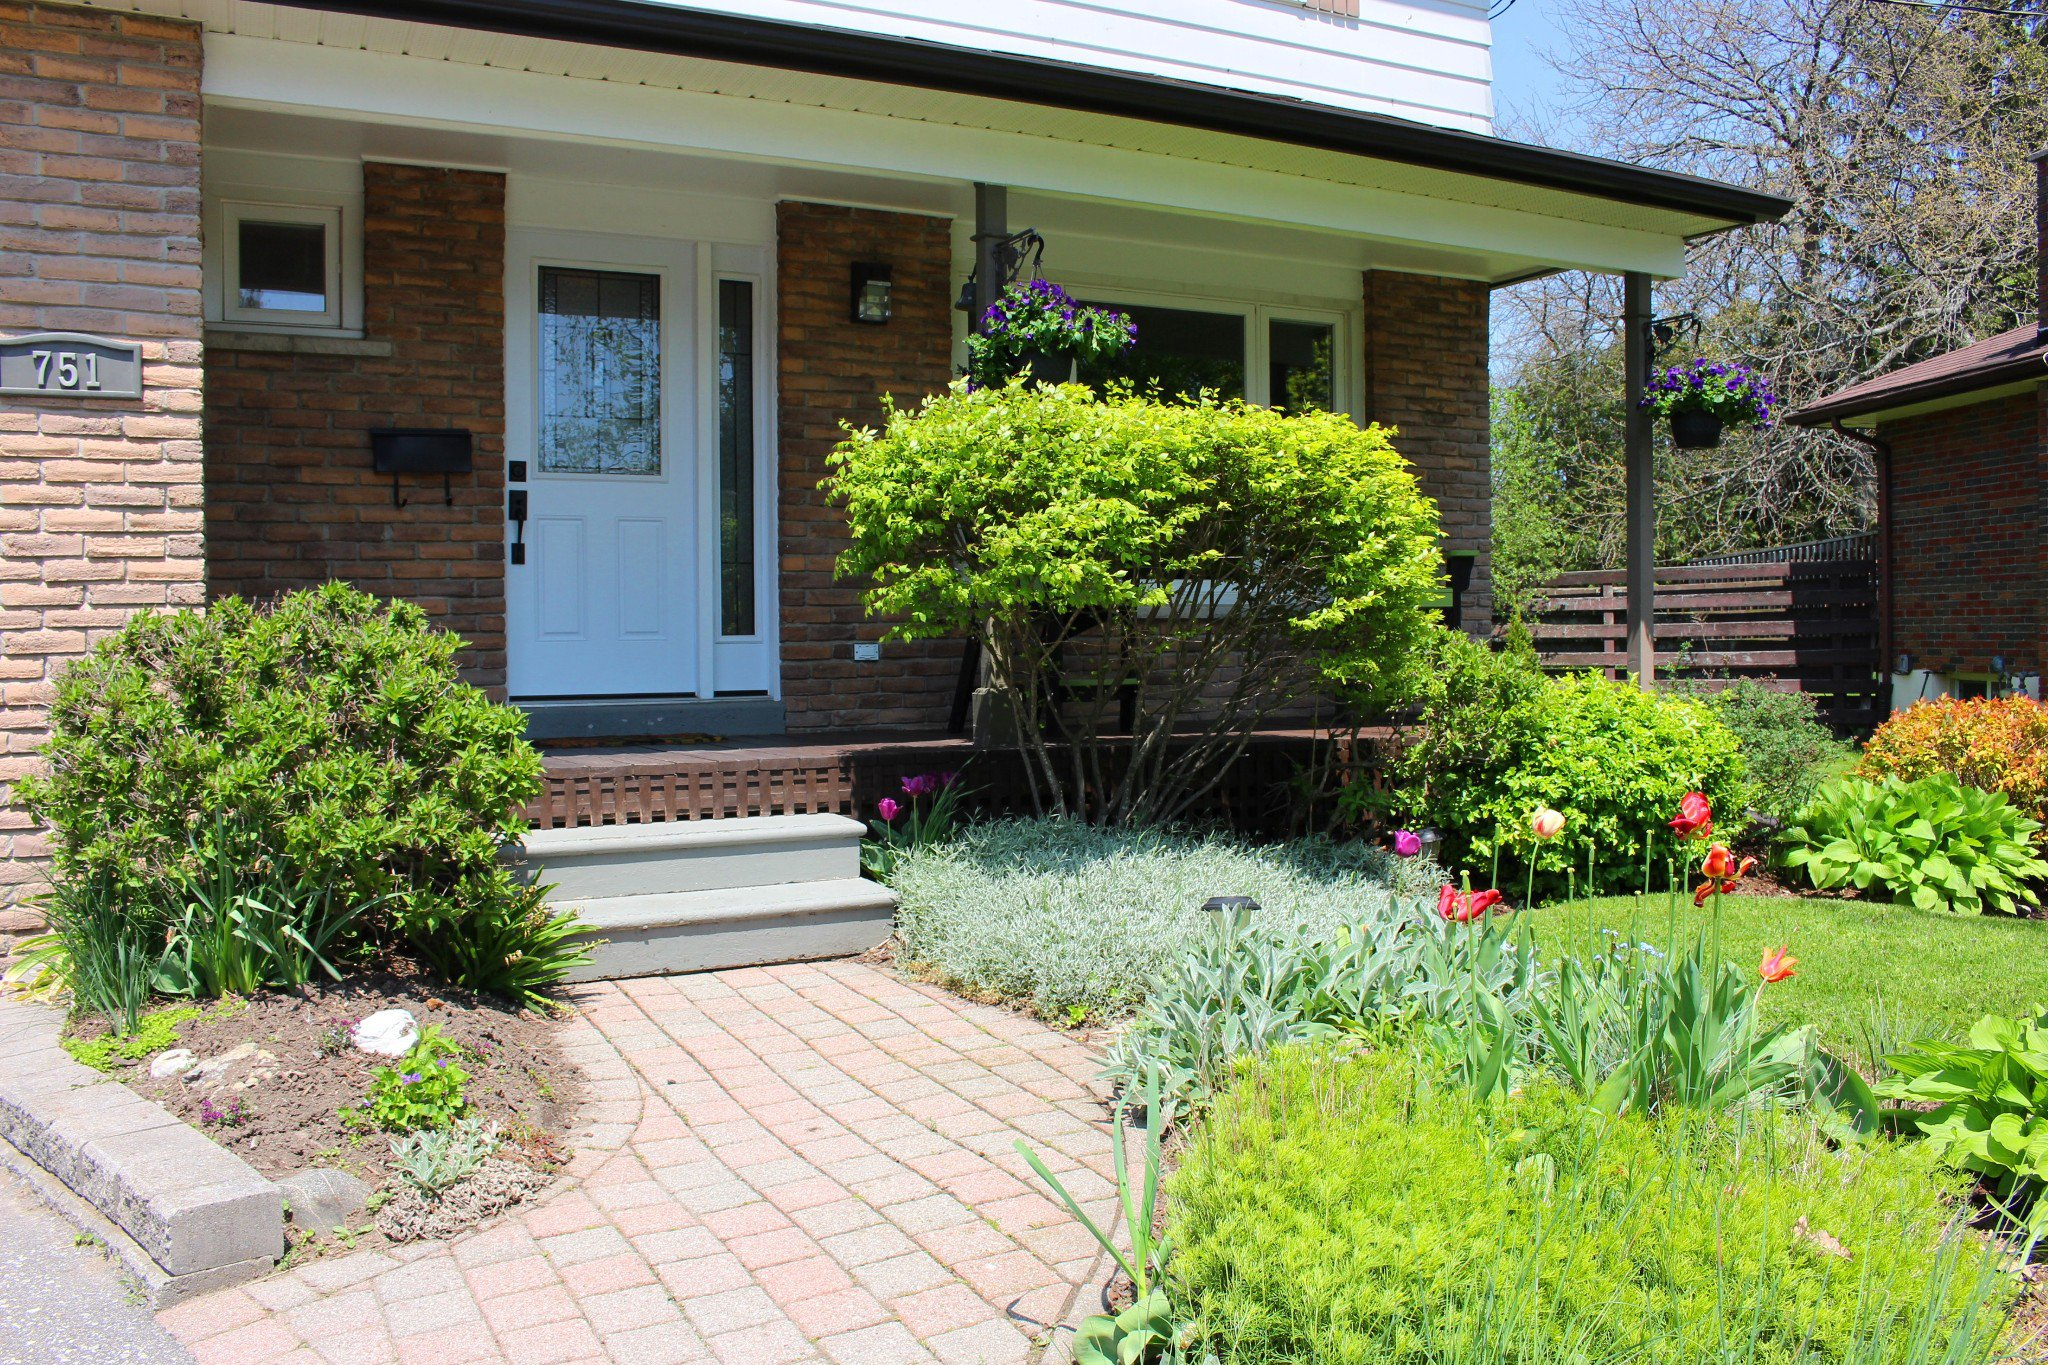 Photo 3: Photos: 751 Spragge Crescent in Cobourg: Residential Detached for sale : MLS®# 1291056